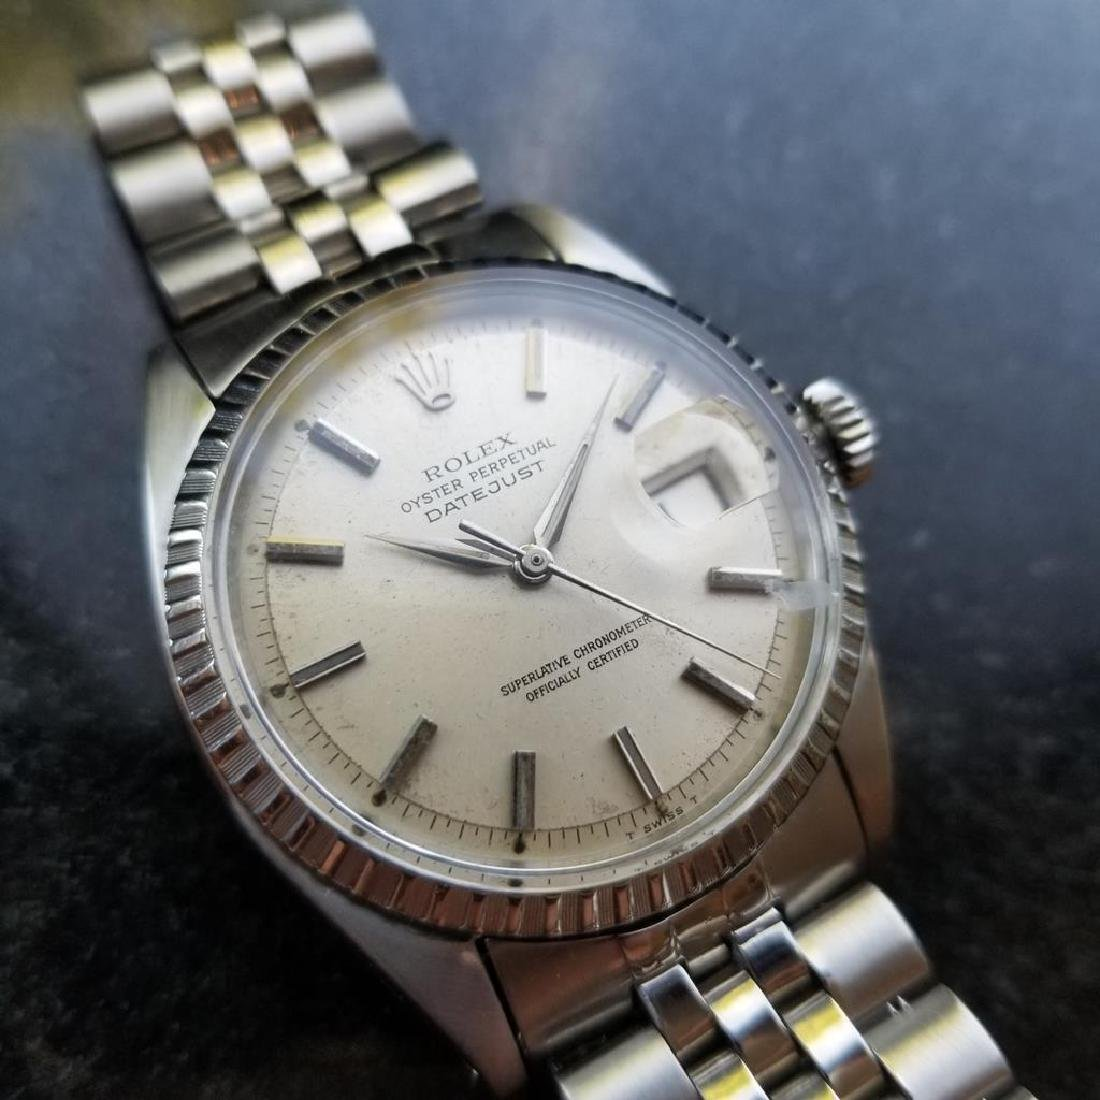 ROLEX Men's Datejust 1603 Automatic c.1965 Stainless - 2